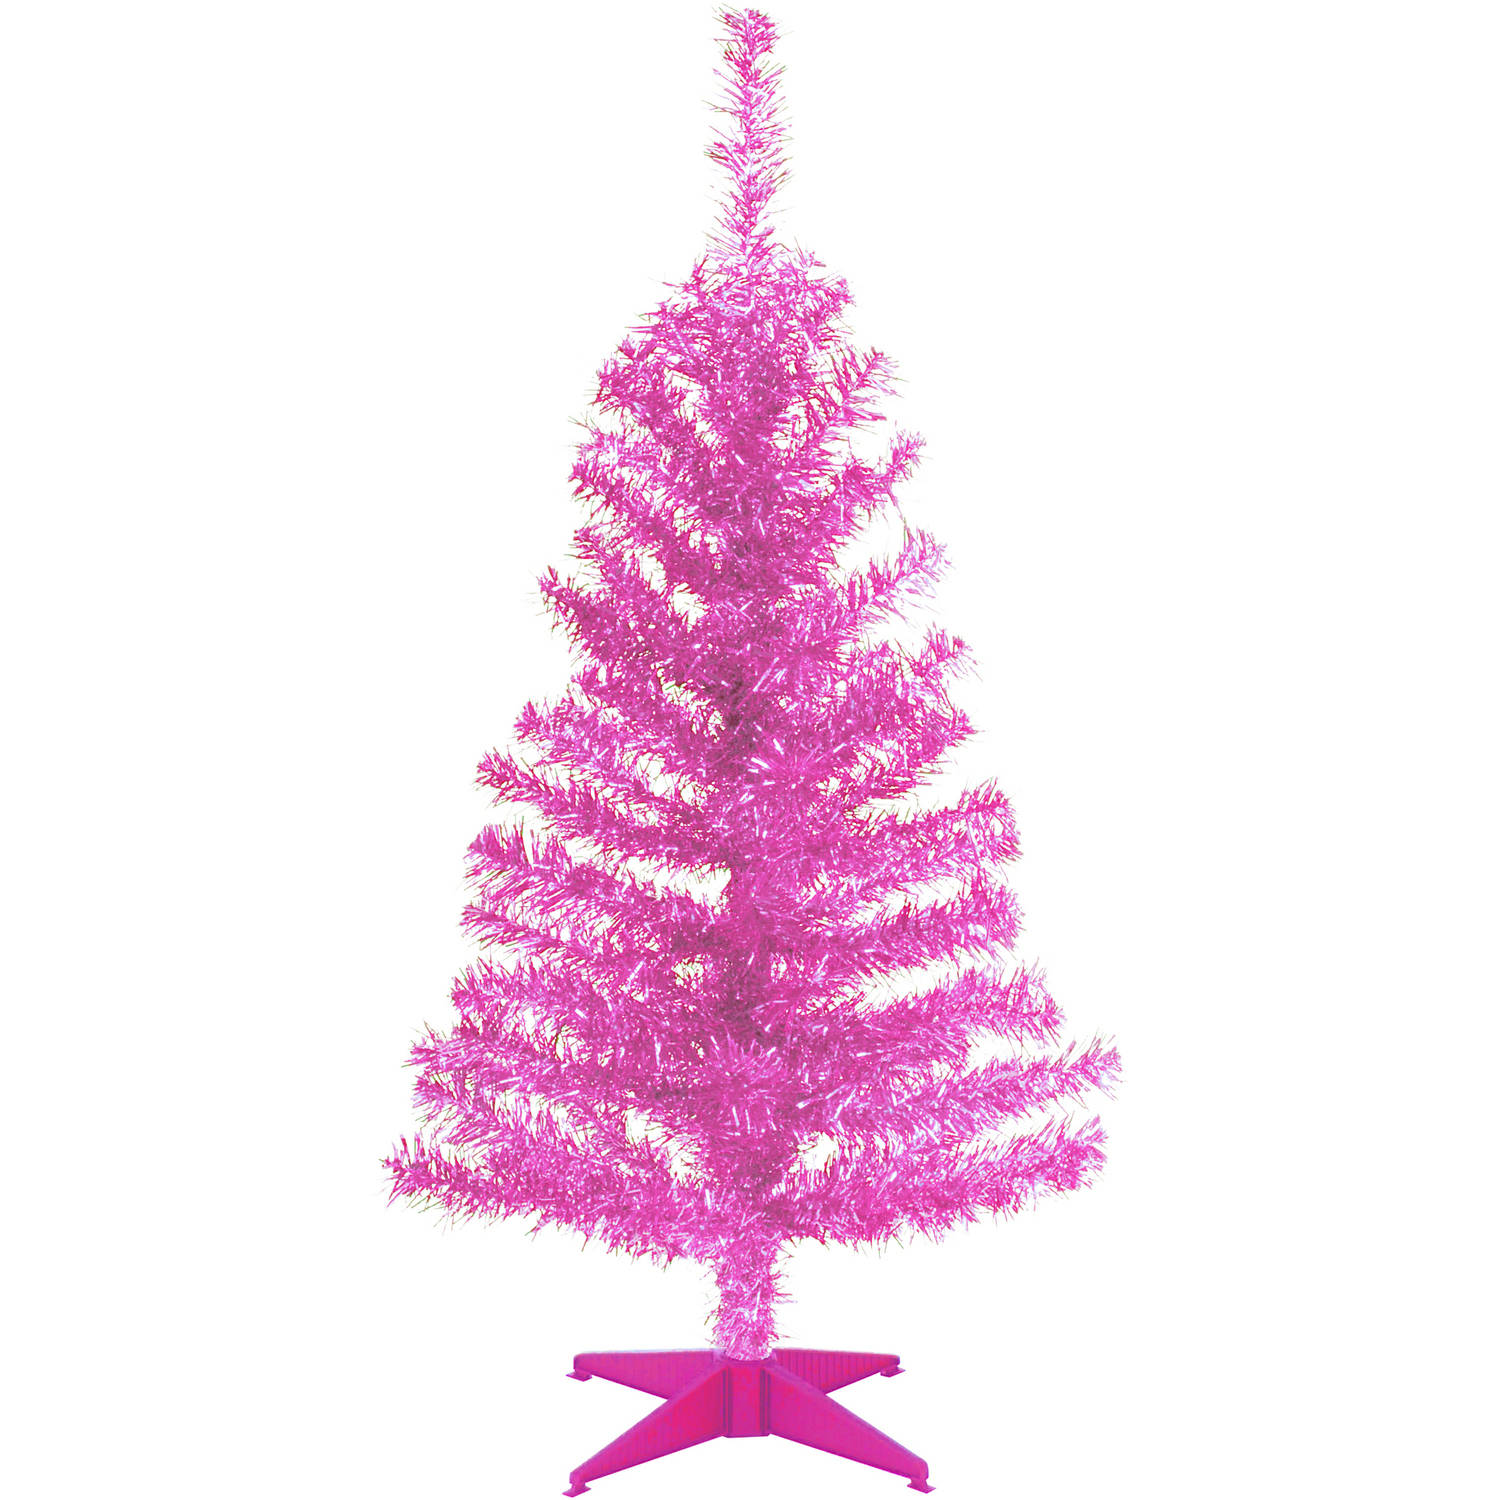 hot pink tabletop tinsel tree with pink stand